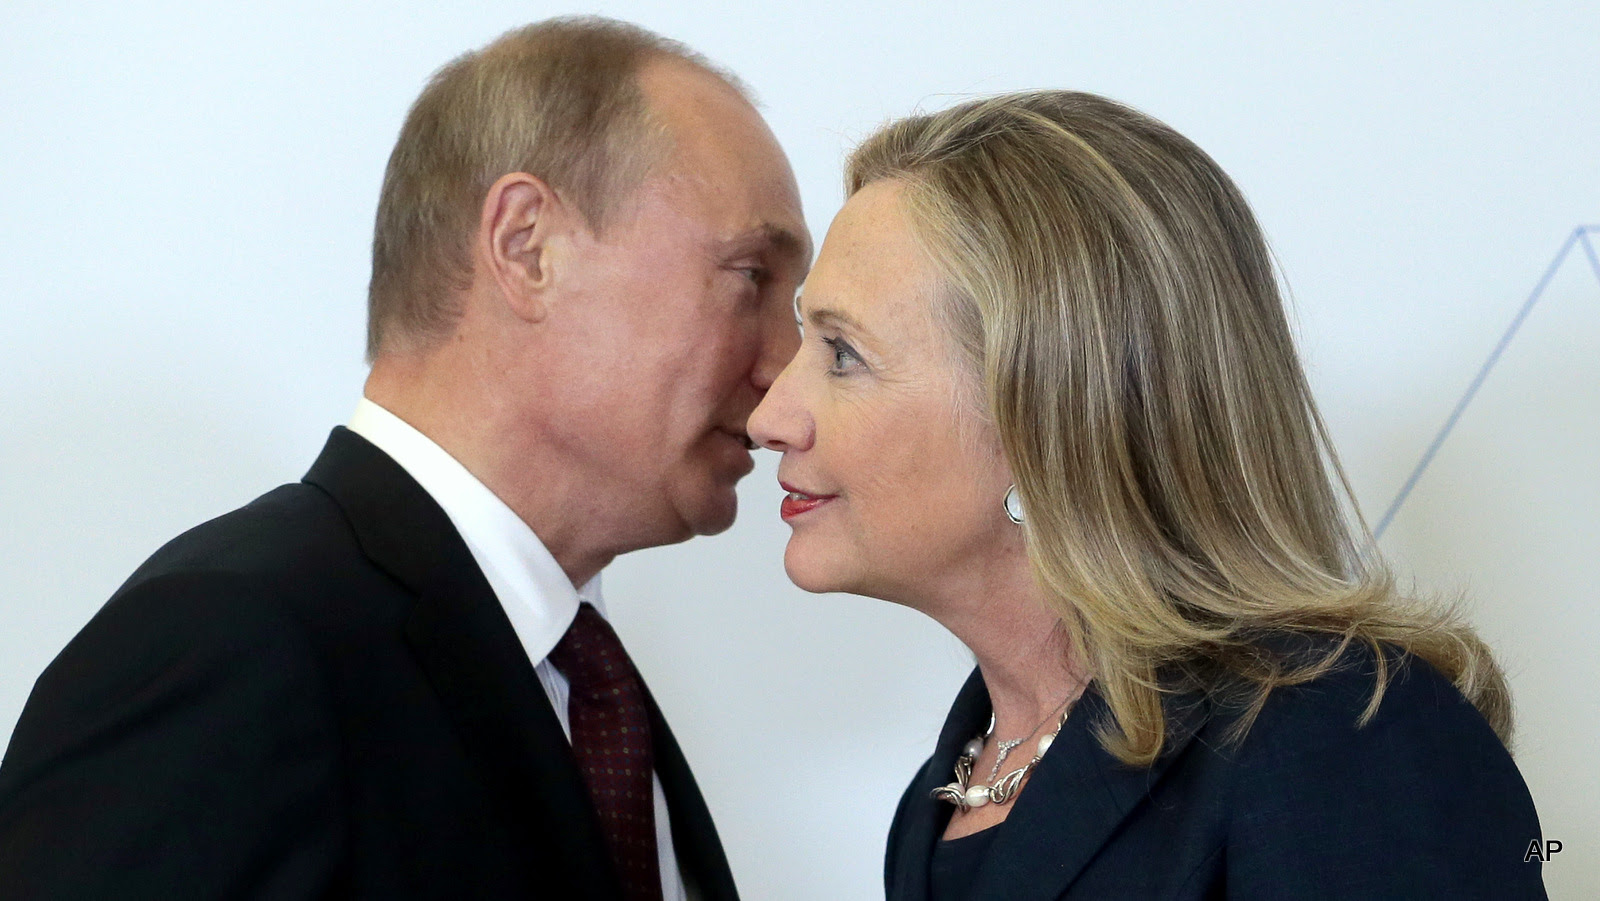 Russian President Vladimir Putin meets with then-Secretary of State Hillary Clinton in Vladivostok, Russia in 2012.